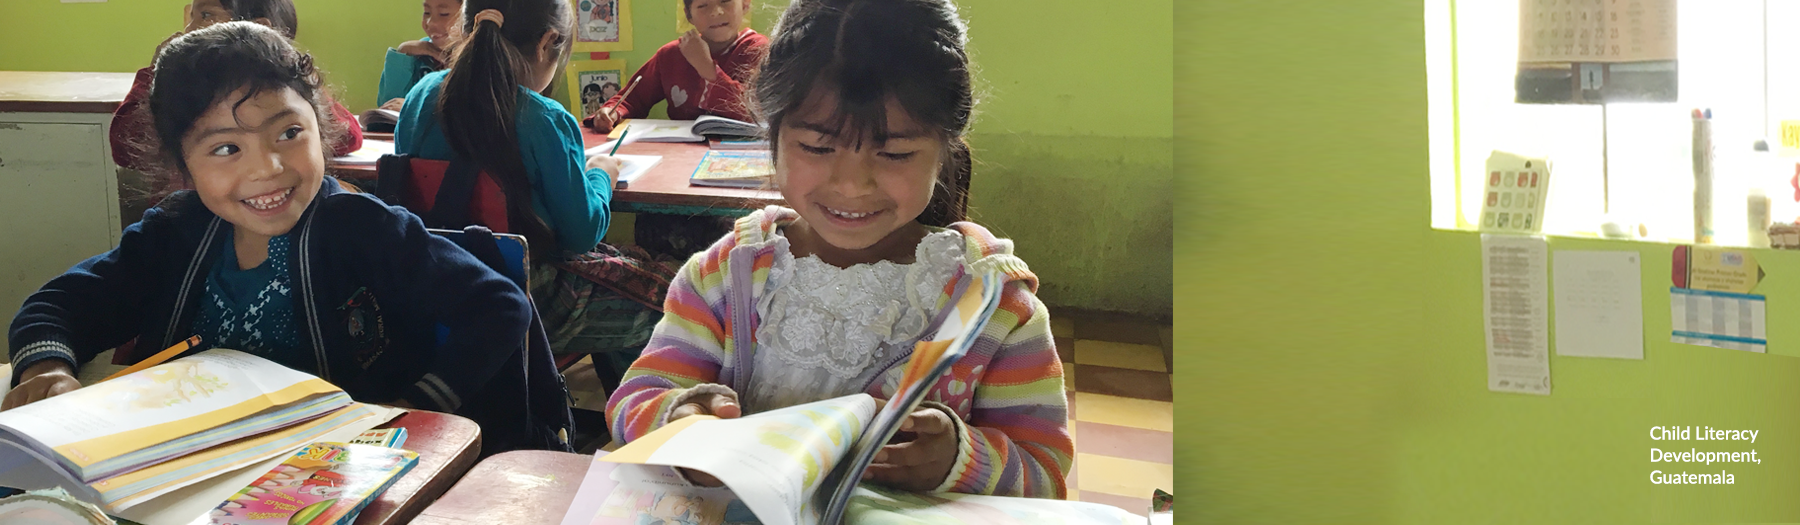 Image of two girls in a classroom in Guatemala